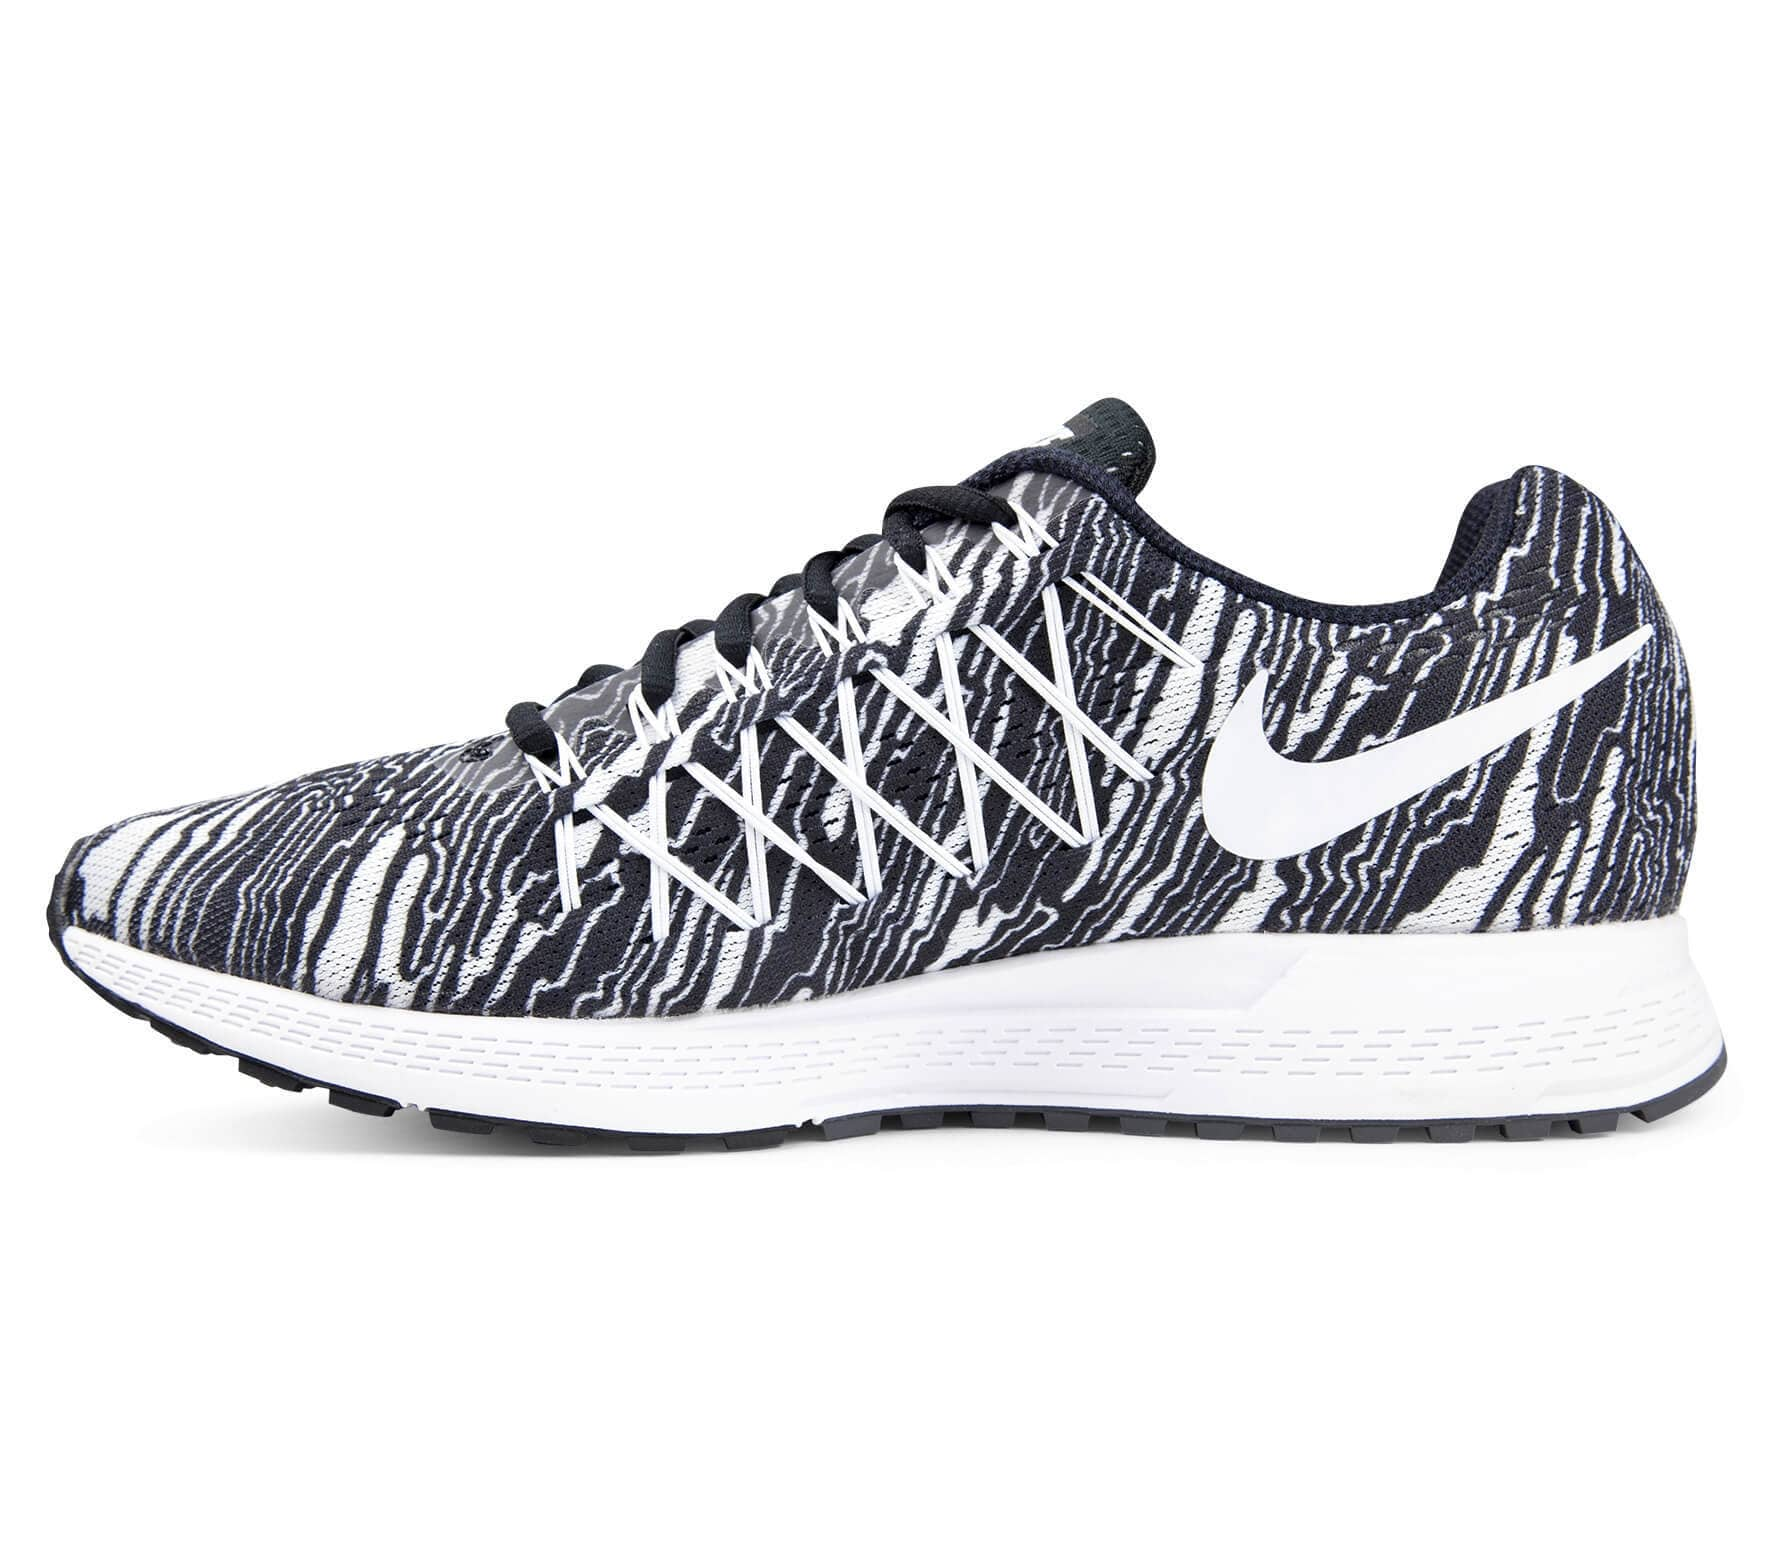 wholesale dealer af80c 9fe4c Nike - Air Zoom Pegasus 32 Print men s running shoes (black white)